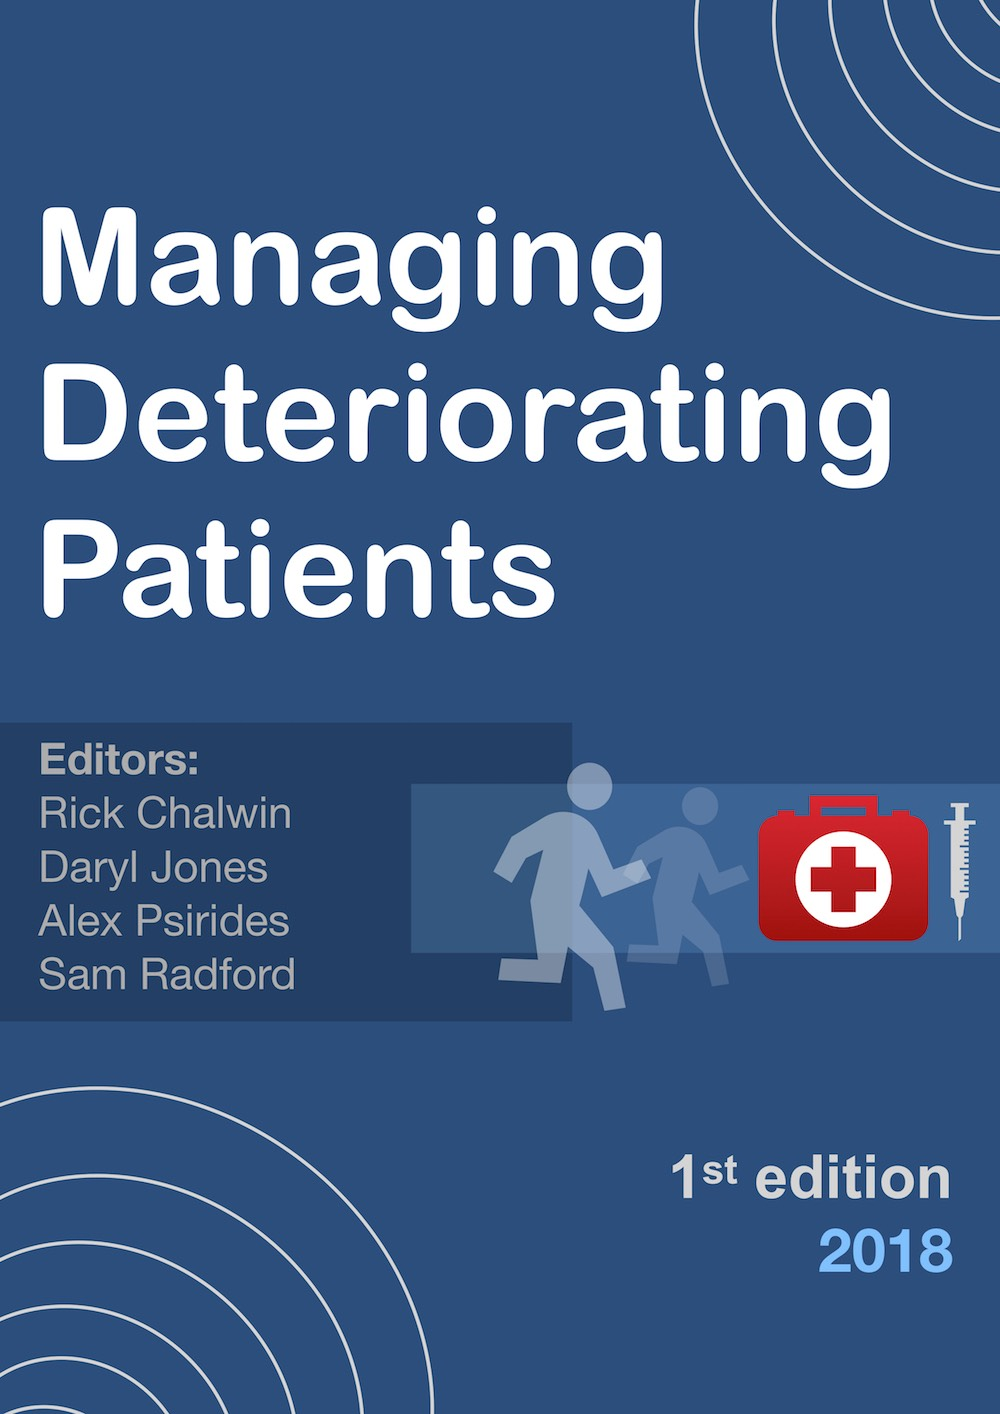 Managing deteriorating patients cover